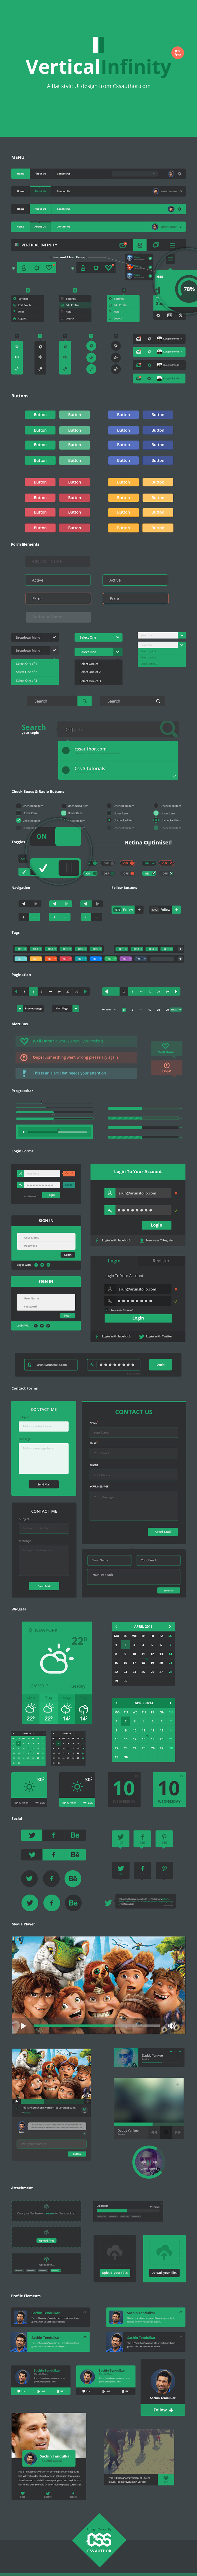 Vertical Infinity – A Mega Flat Style UI Kit PSD for Free Download - cssauthor.com